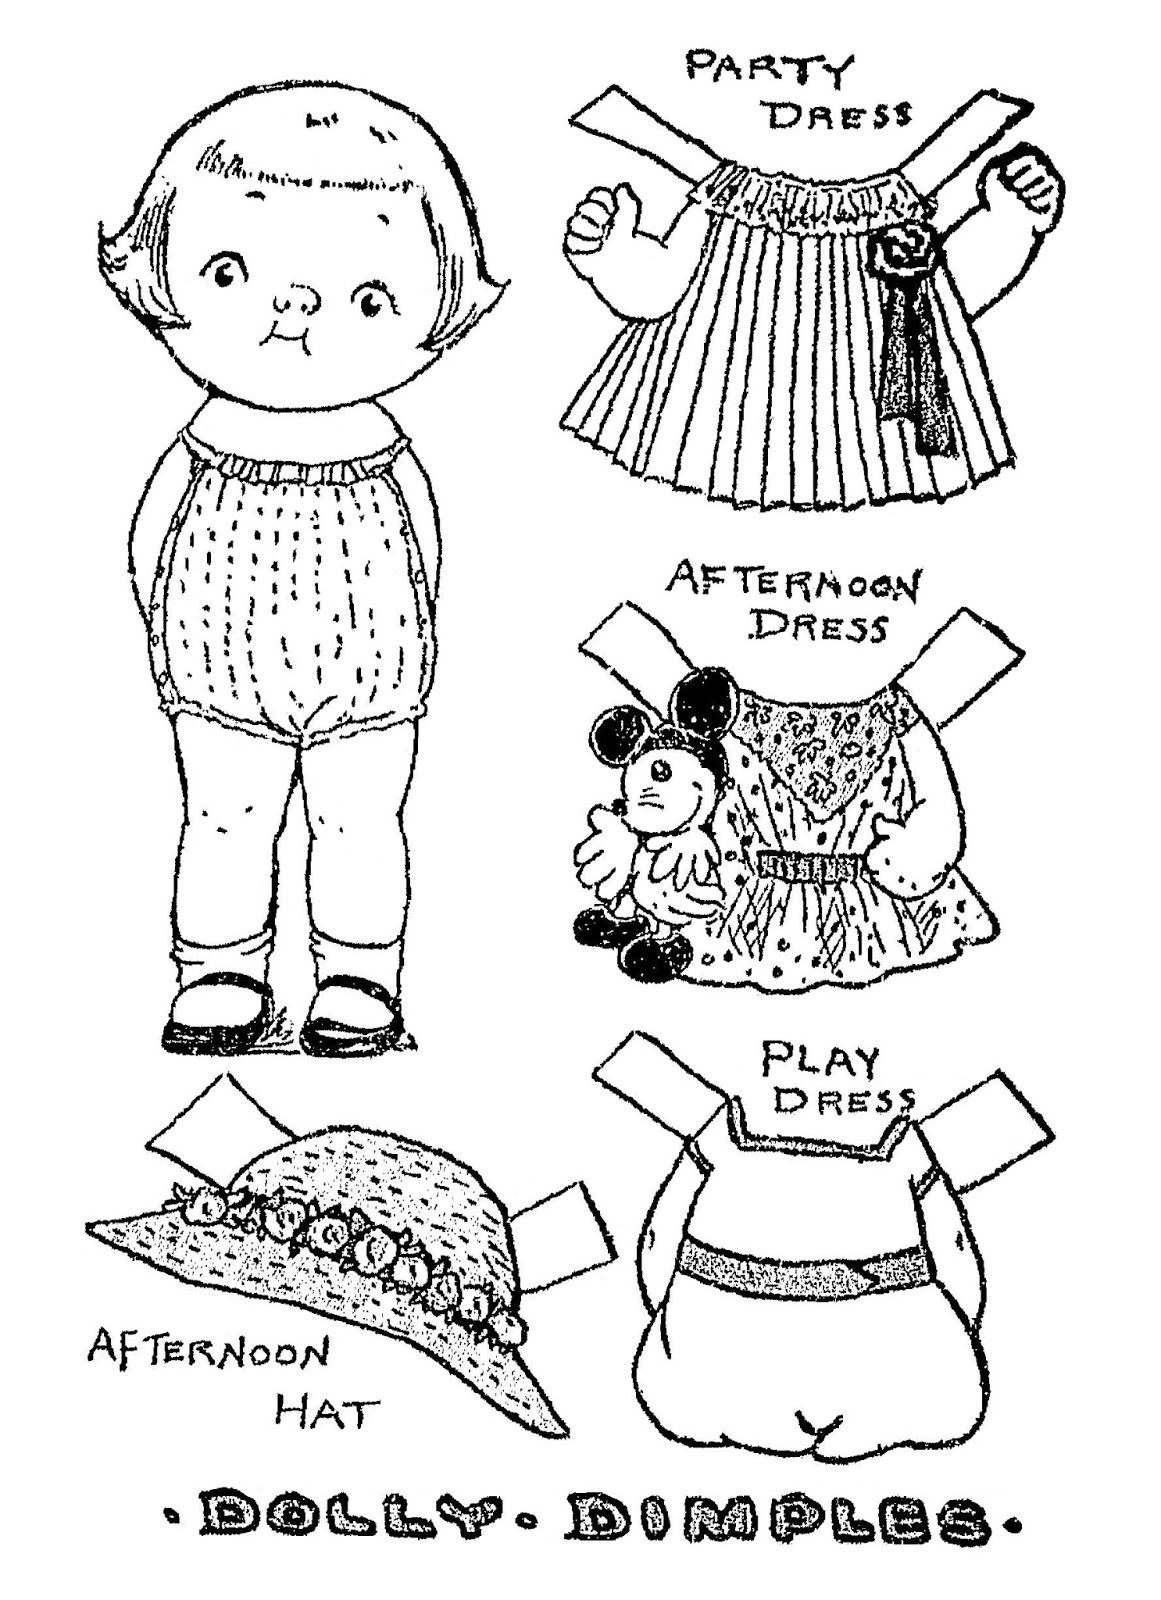 Mostly Paper Dolls Too Dolly Dimples And Comfy Comic